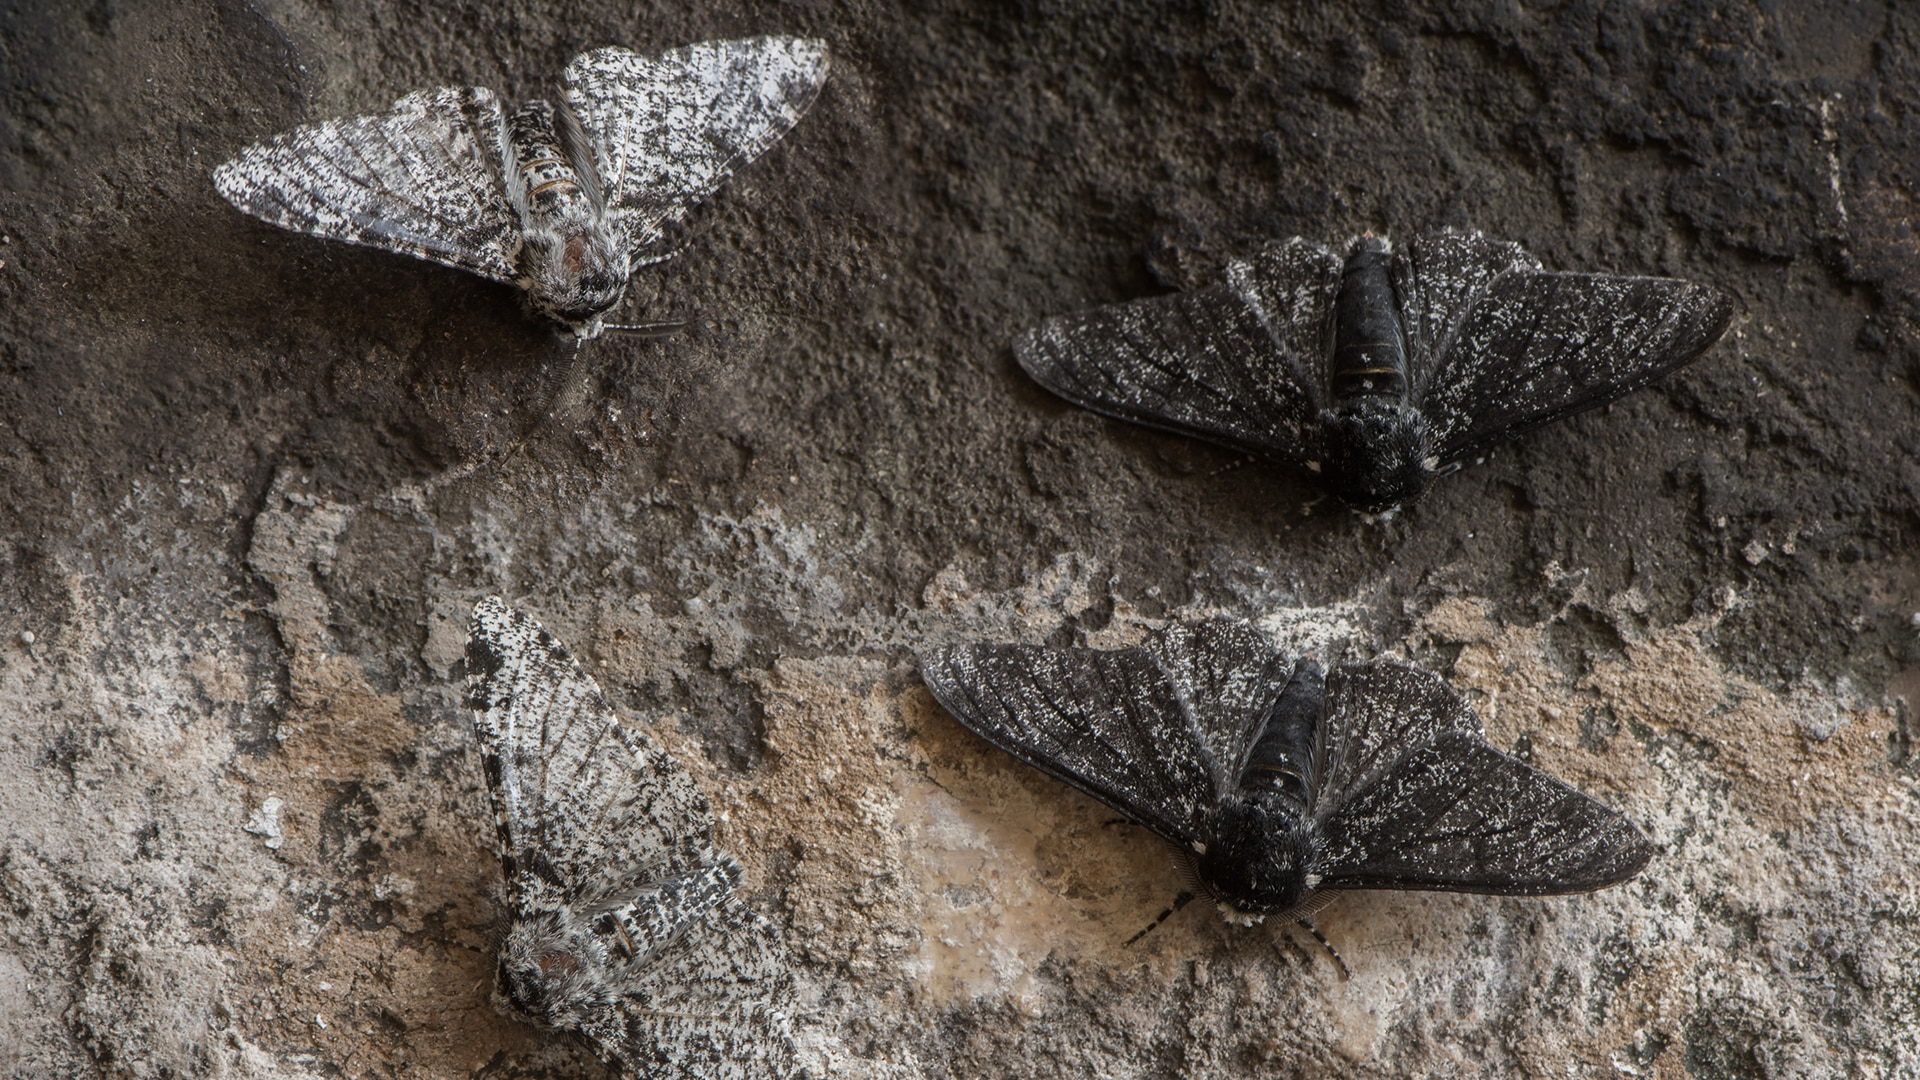 Peppered moths on a tree